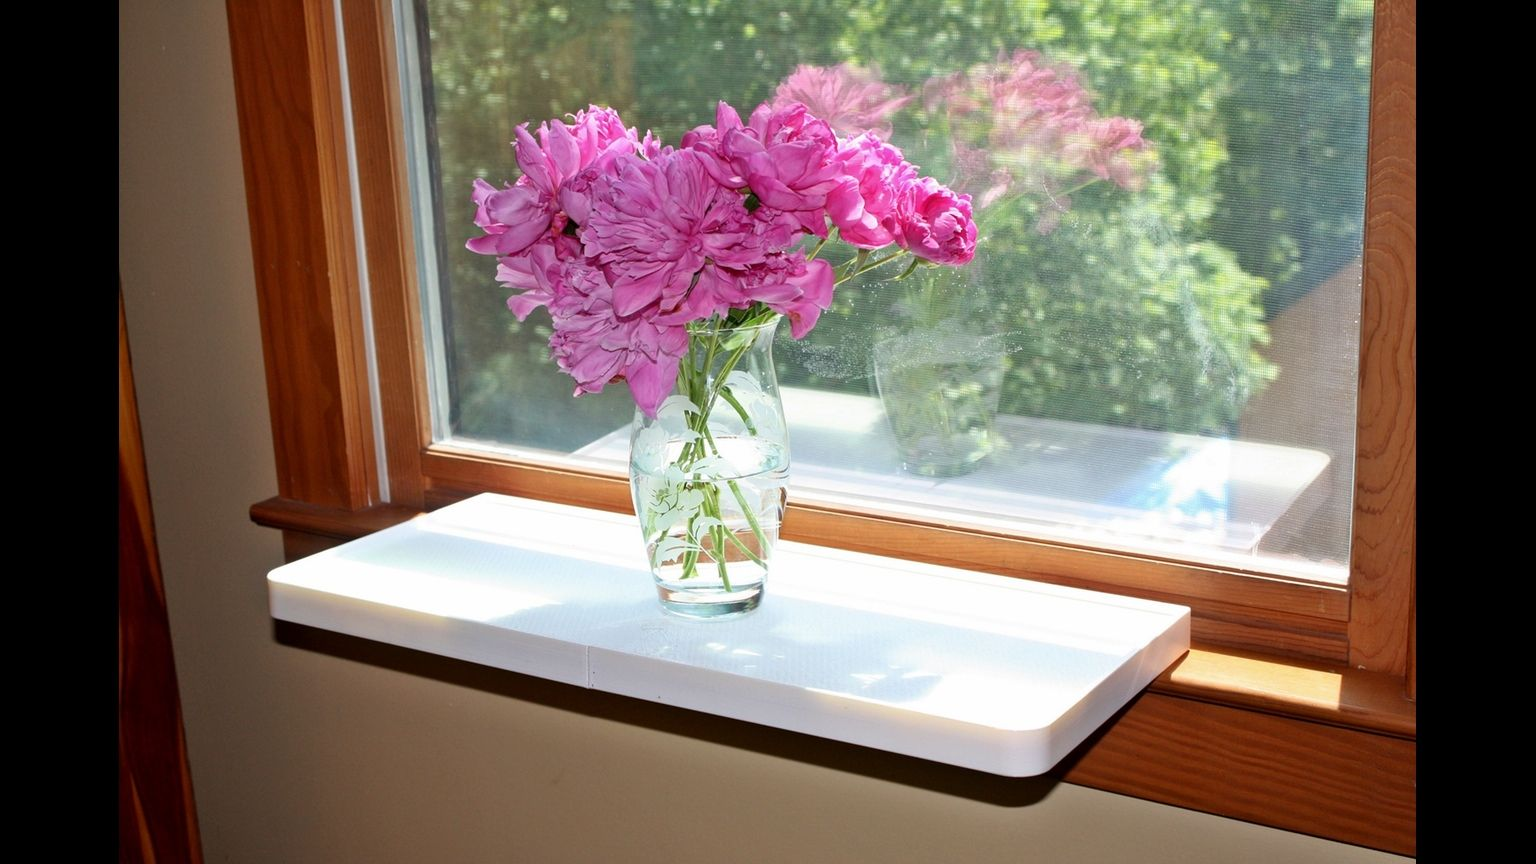 Plant One On Us Is A Windowsill Extender For Plants Pets Or Anything You Want To Put On Your Windowsill Window Sill Window Sill Decor Space Savers